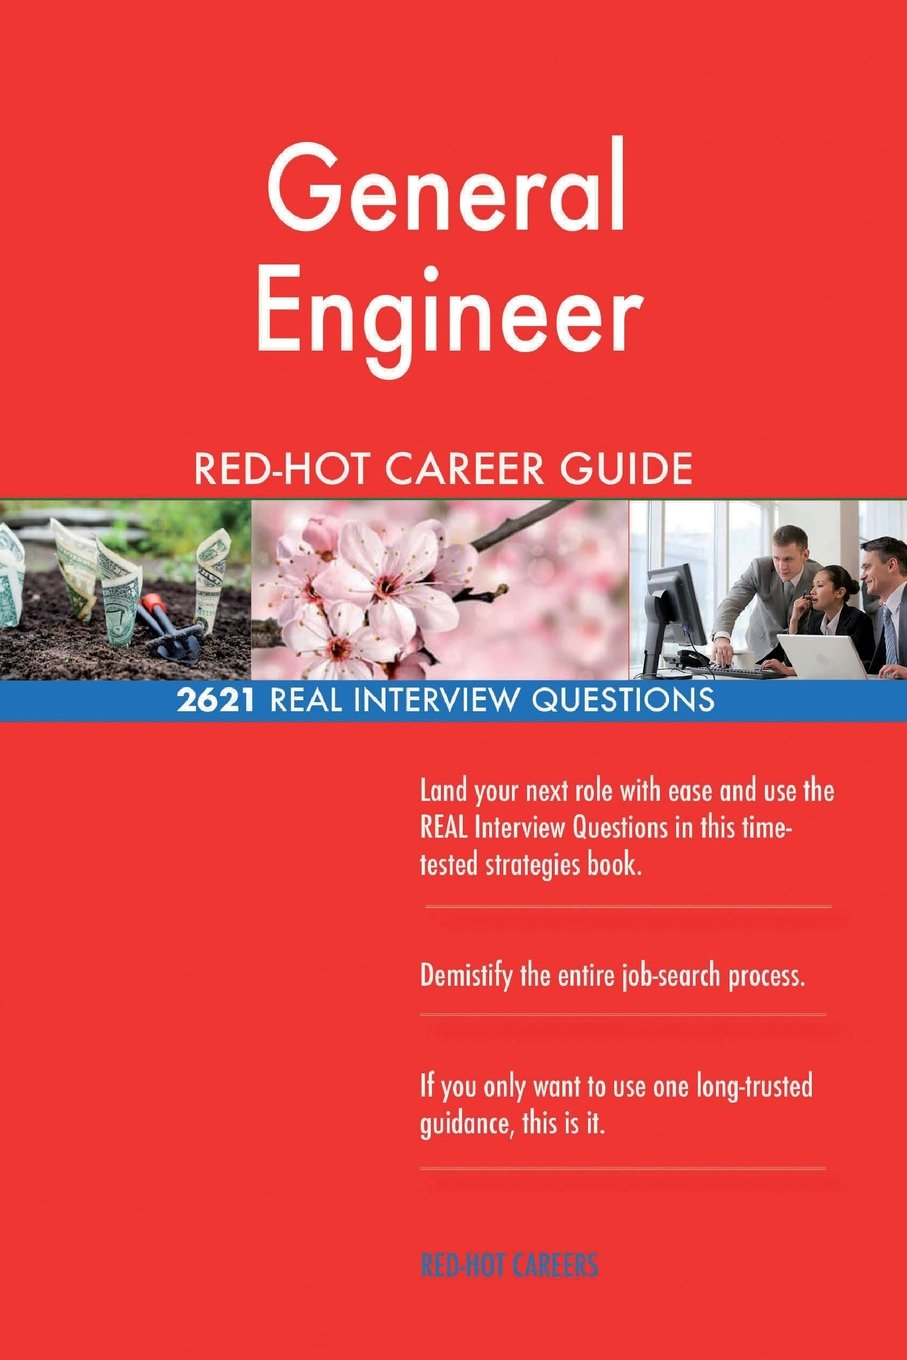 General Engineer RED-HOT Career Guide; 2621 REAL Interview Questions pdf